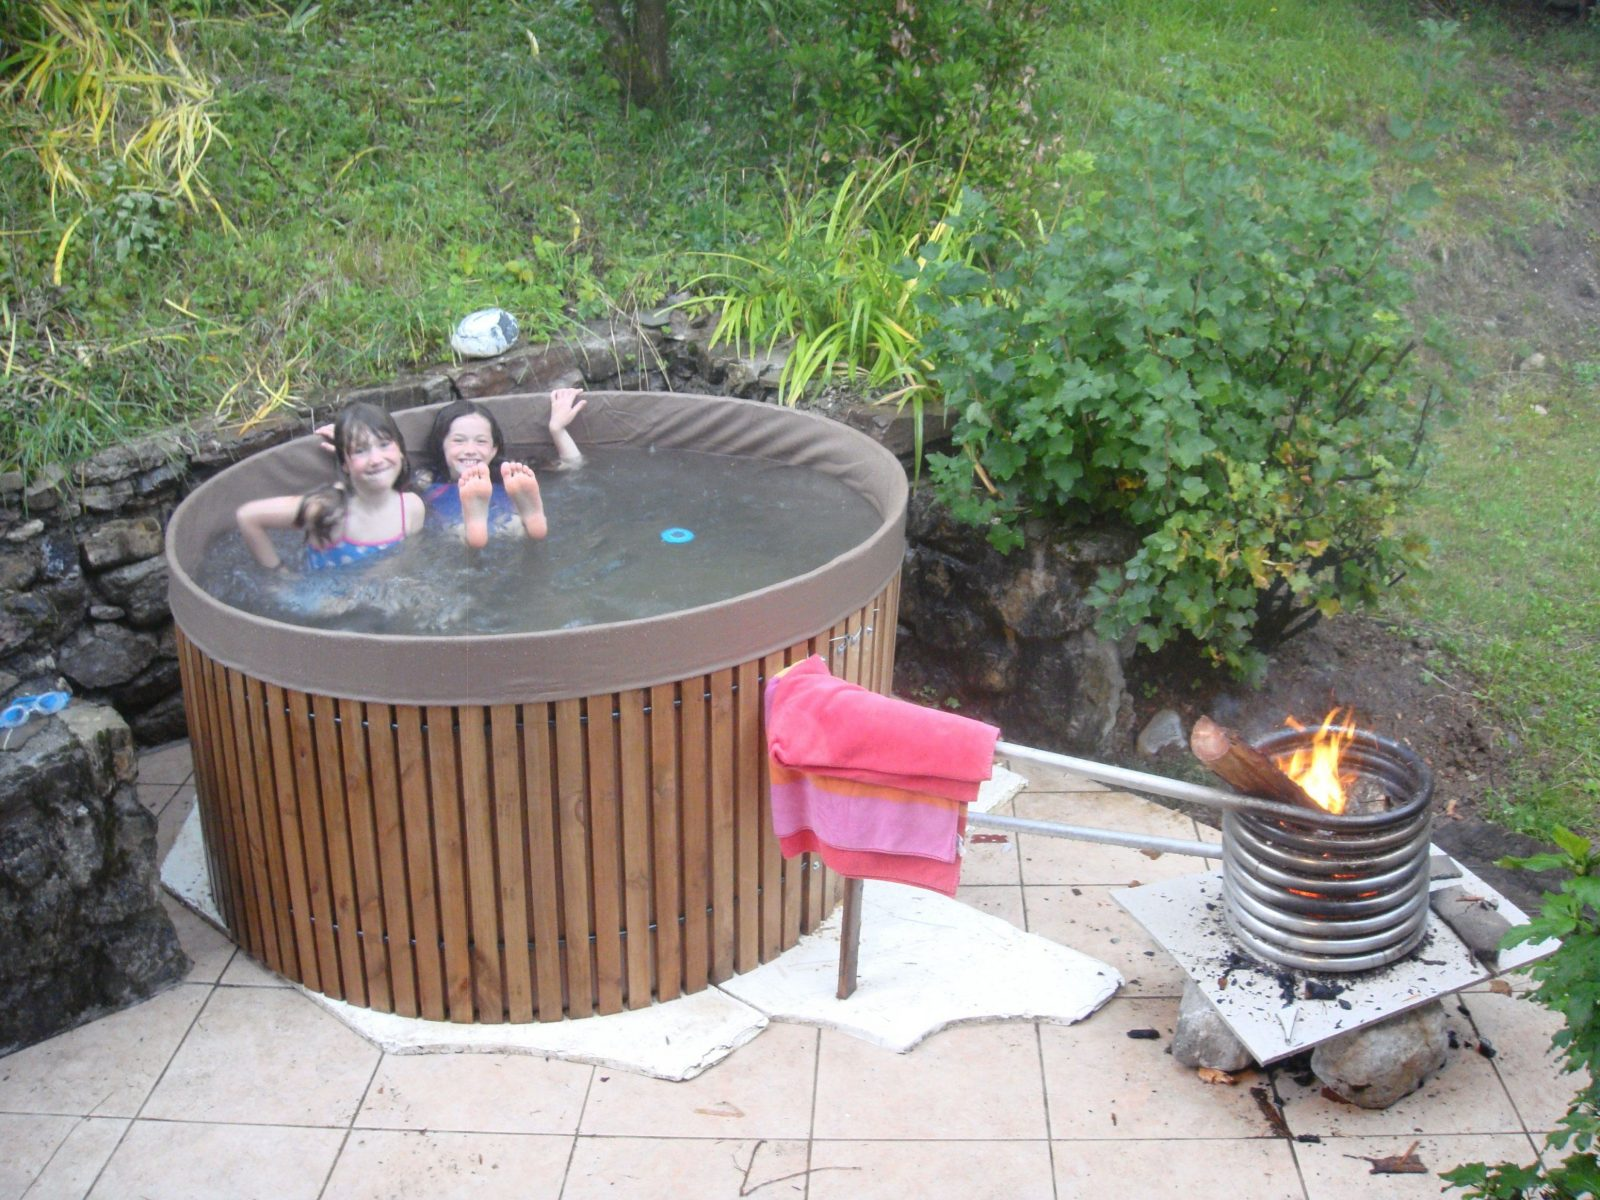 Diy Hot Tub  From Cold To Bath Temp In 35 Hours Woodfire Inside A von Hot Tube Selber Bauen Bild